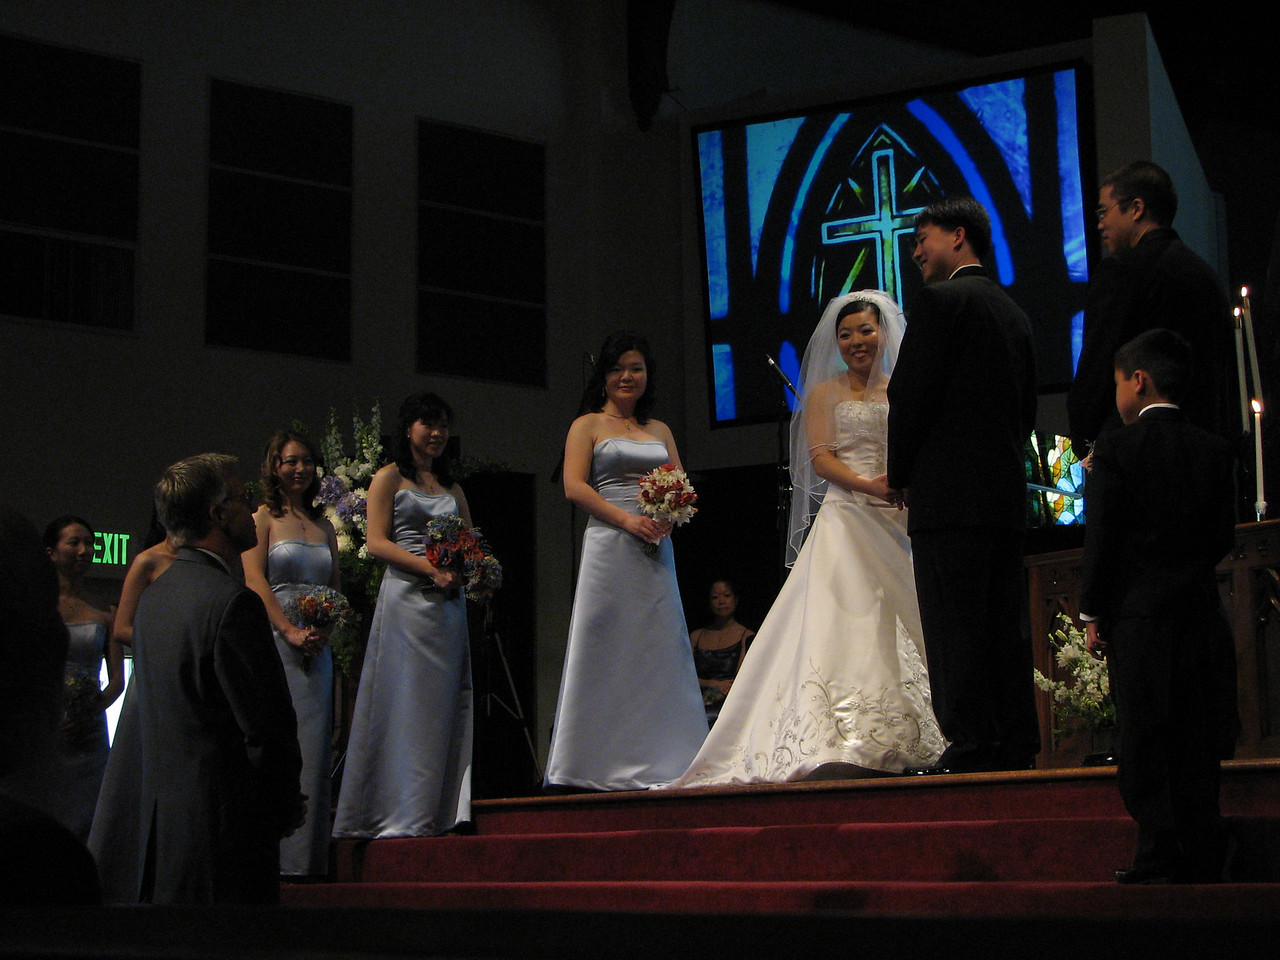 2007 05 19 Sat - Pastor Frank acknowledging Stephen & Cynthia Chang as hubby & wifey